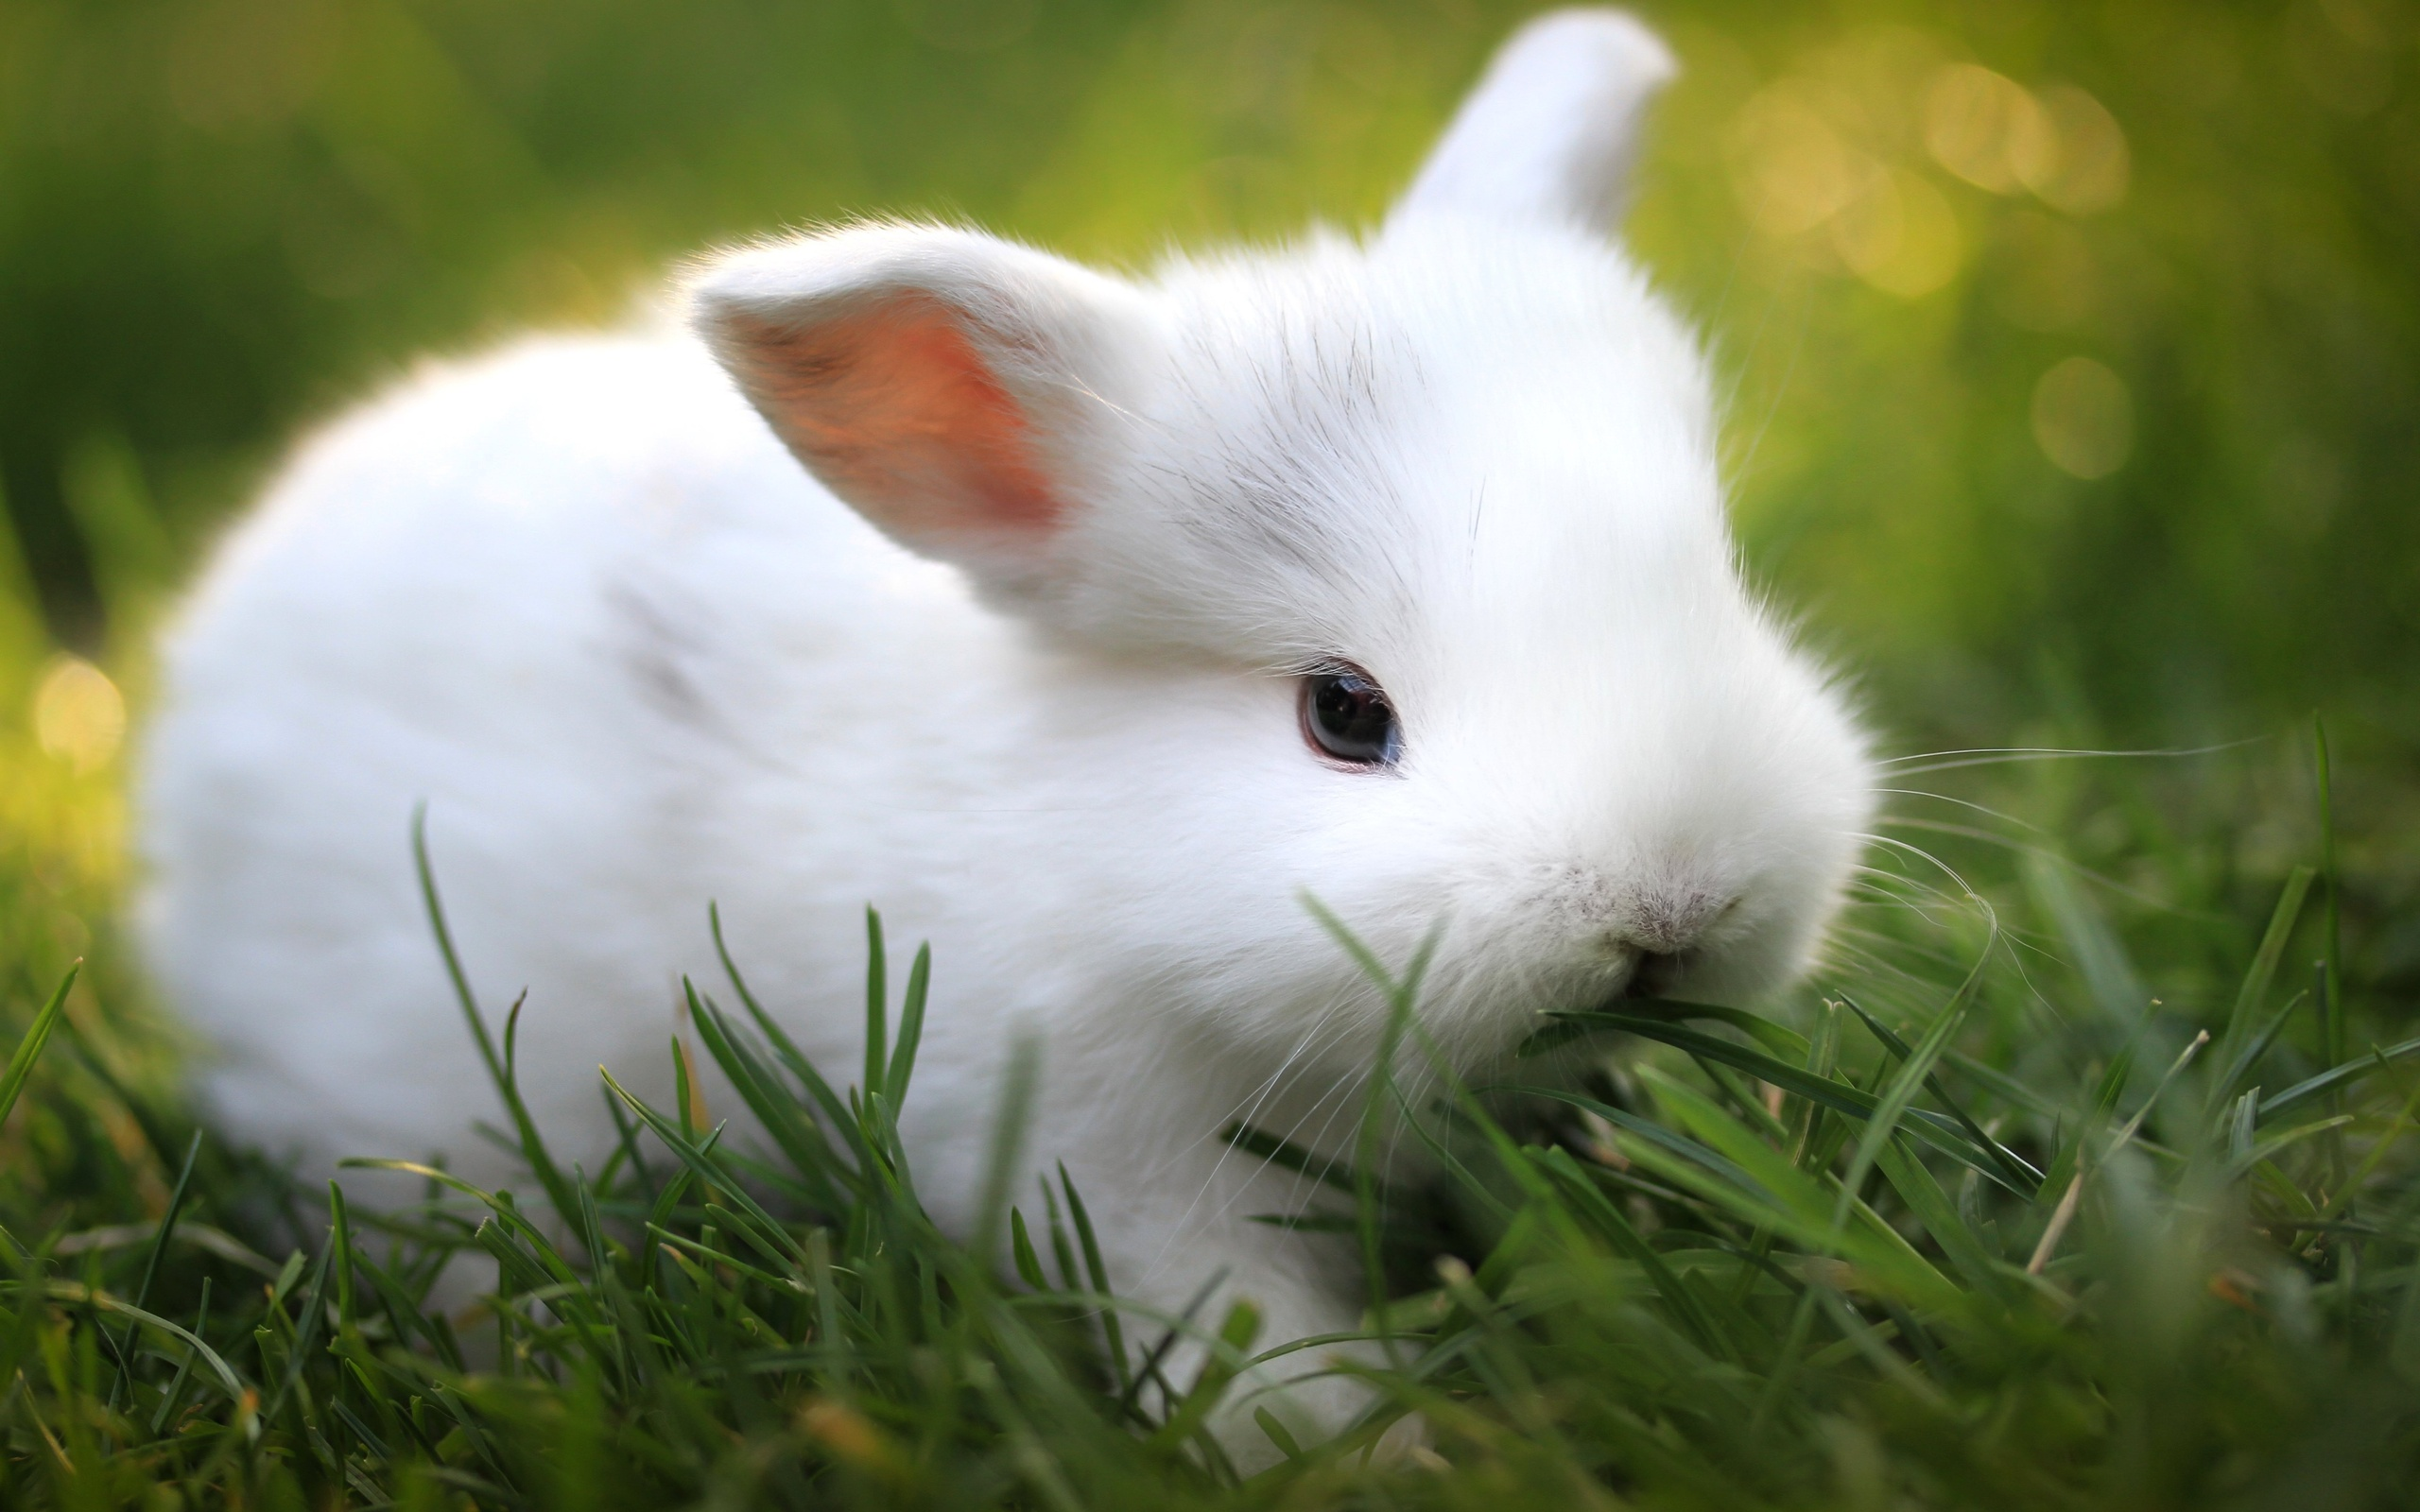 wallpaper.wiki-Free-adorable-rabbit-wallpaper-PIC-WPC003835